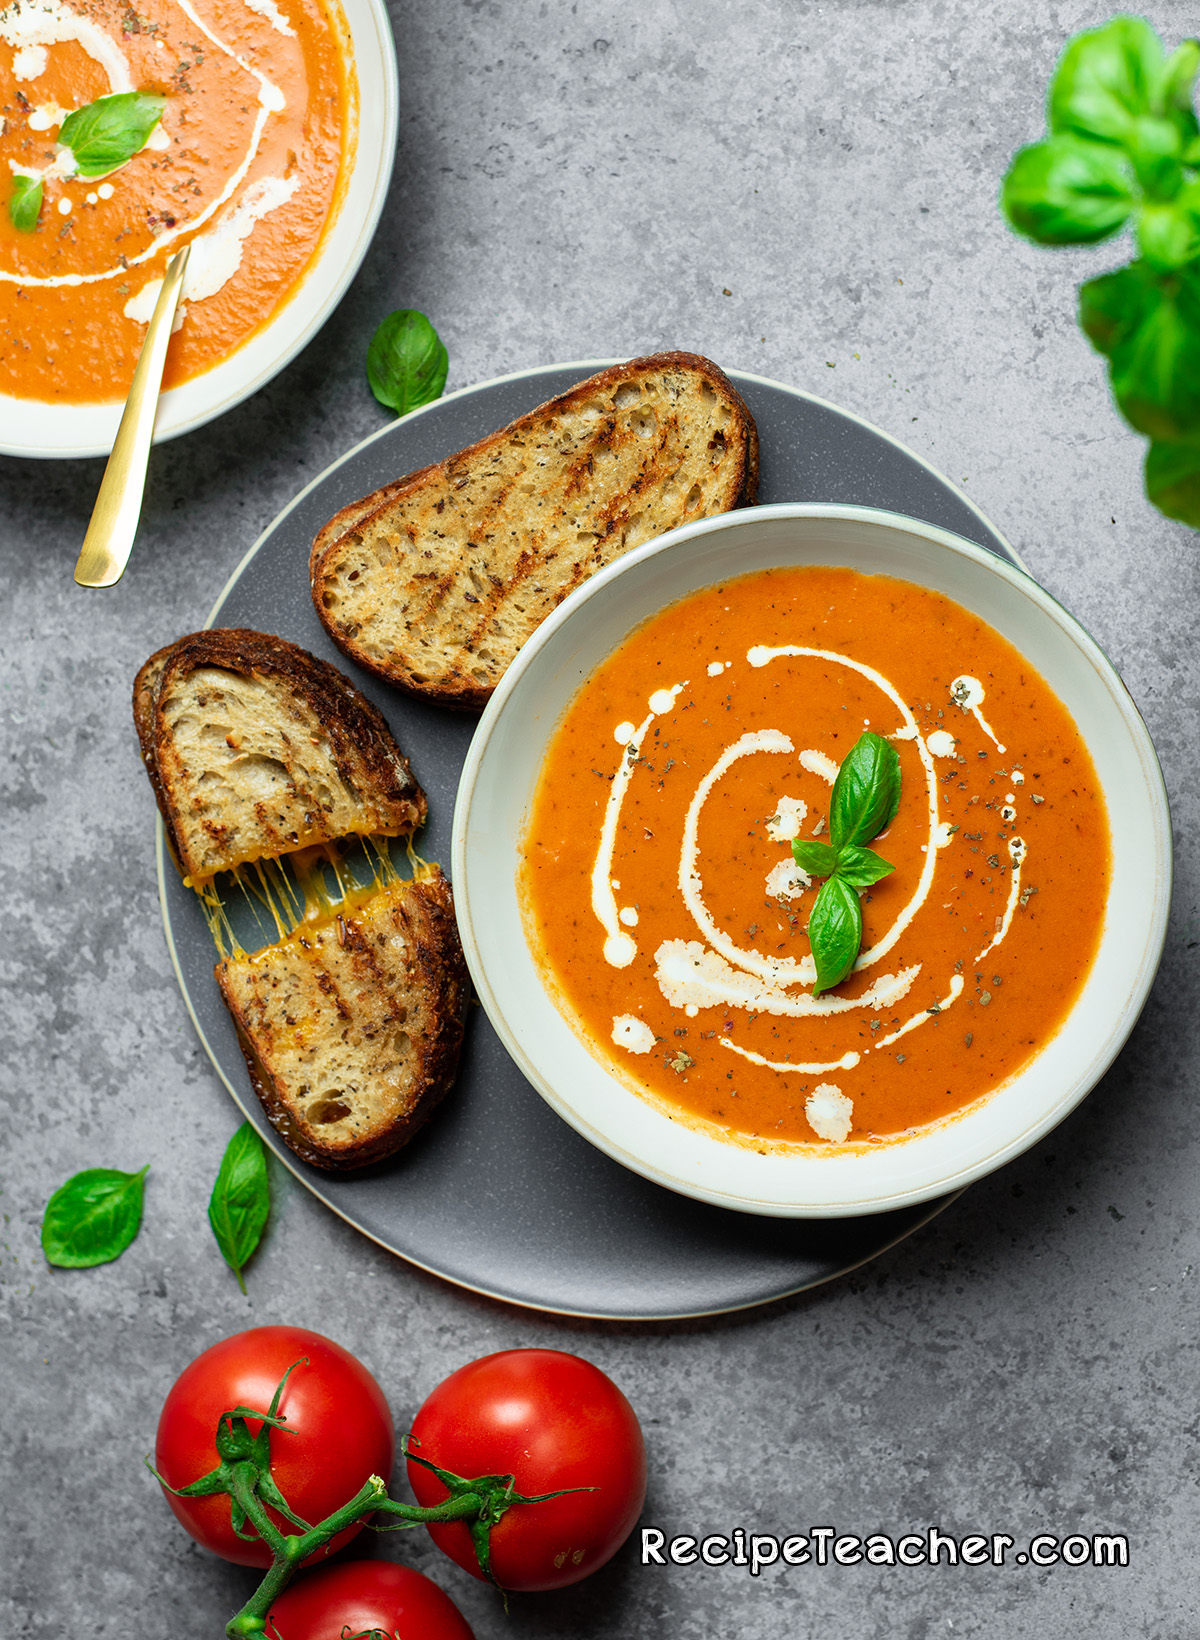 Instant Pot creamy tomato and basil soup